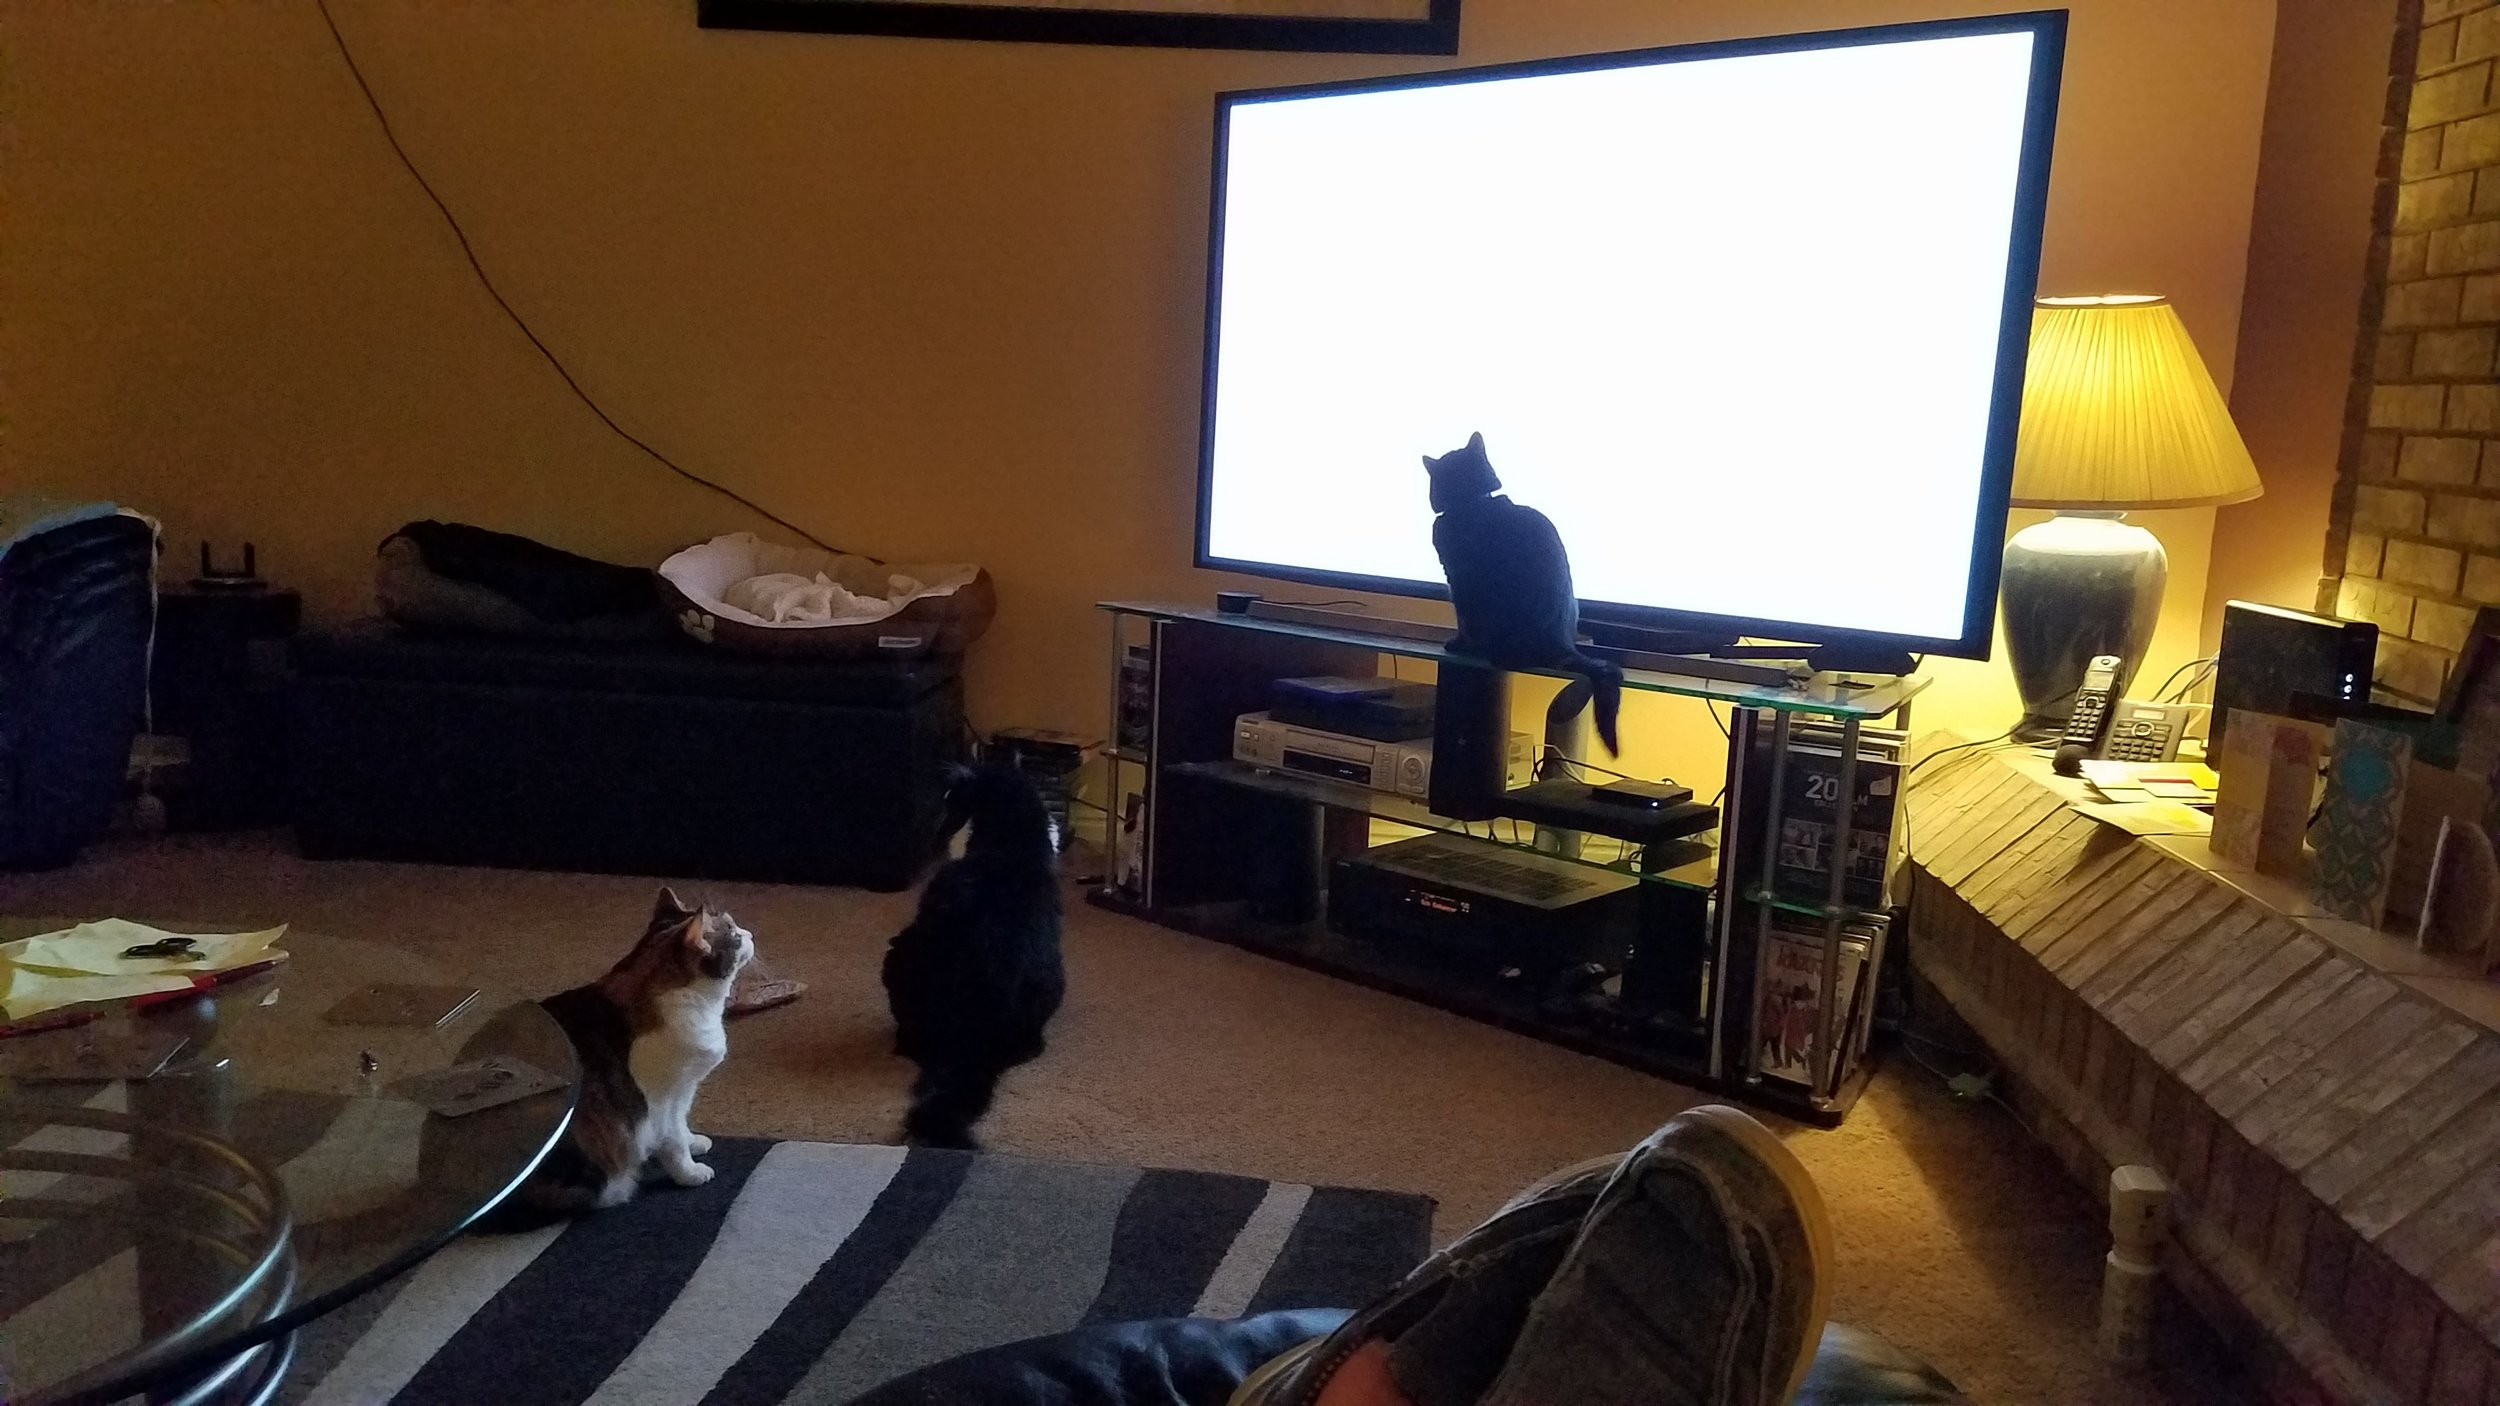 The cats decided they like TV